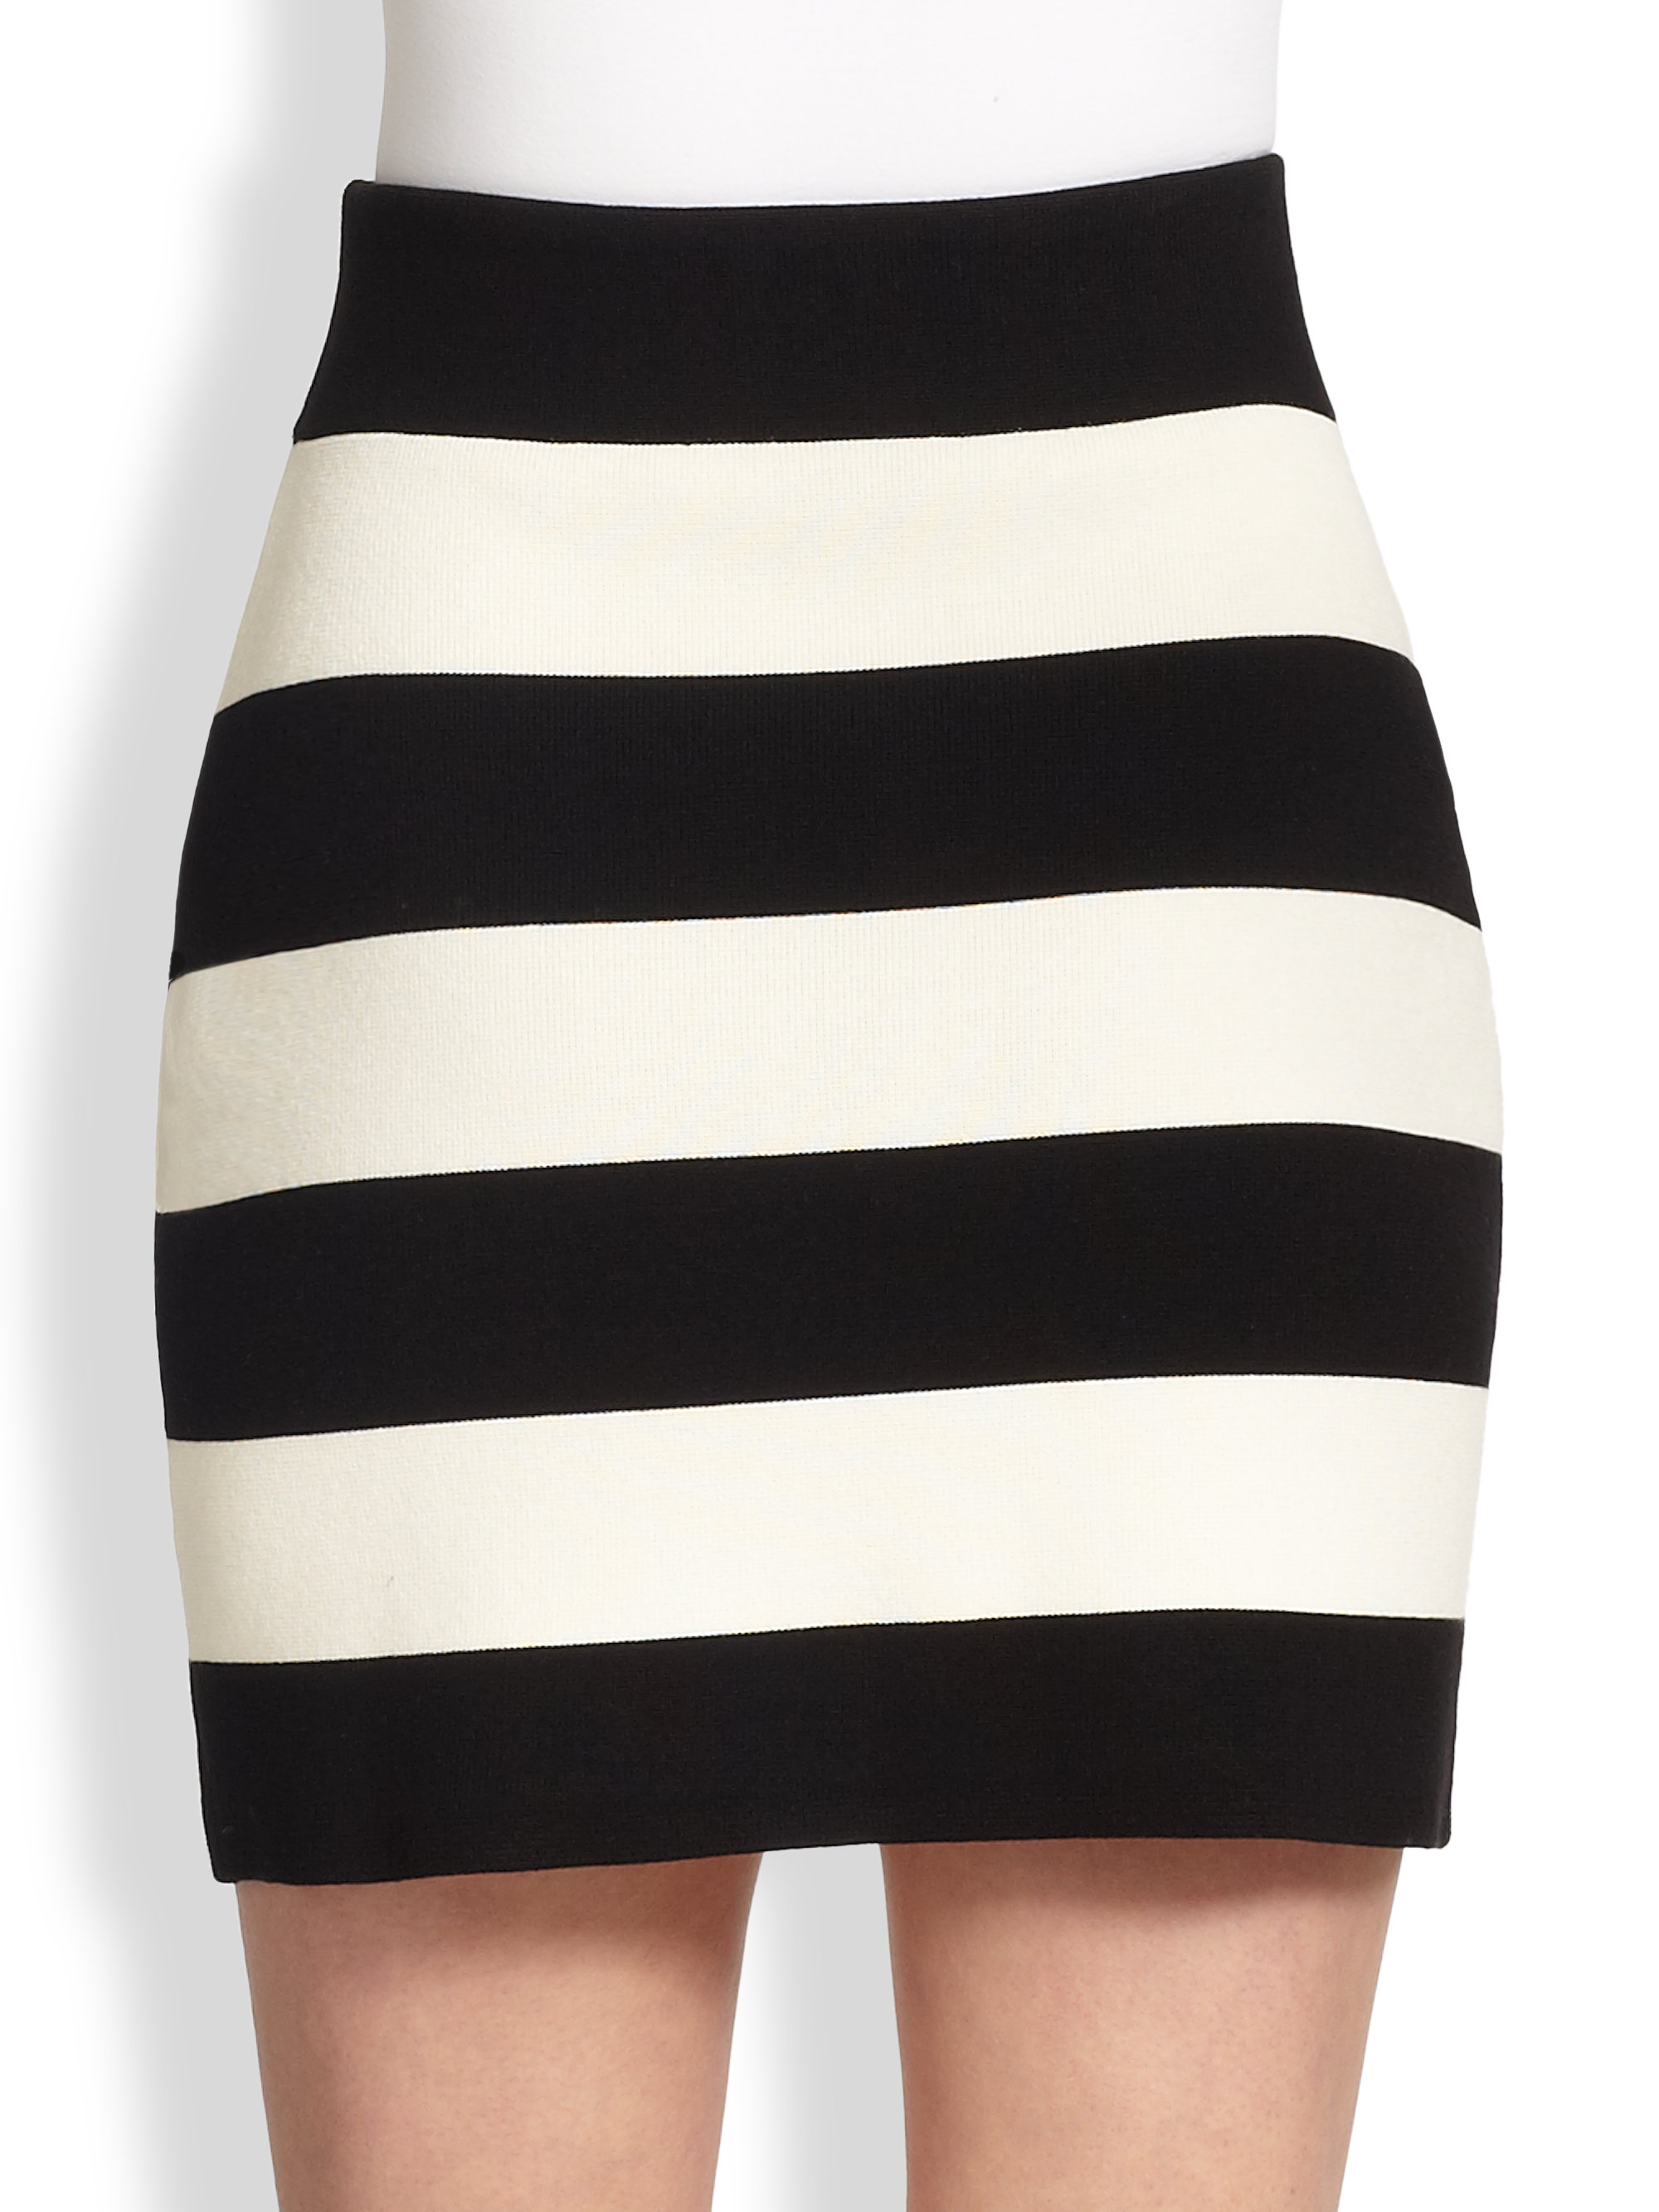 Theory Prosecco Striped Stretch Knit Mini Skirt in Black | Lyst